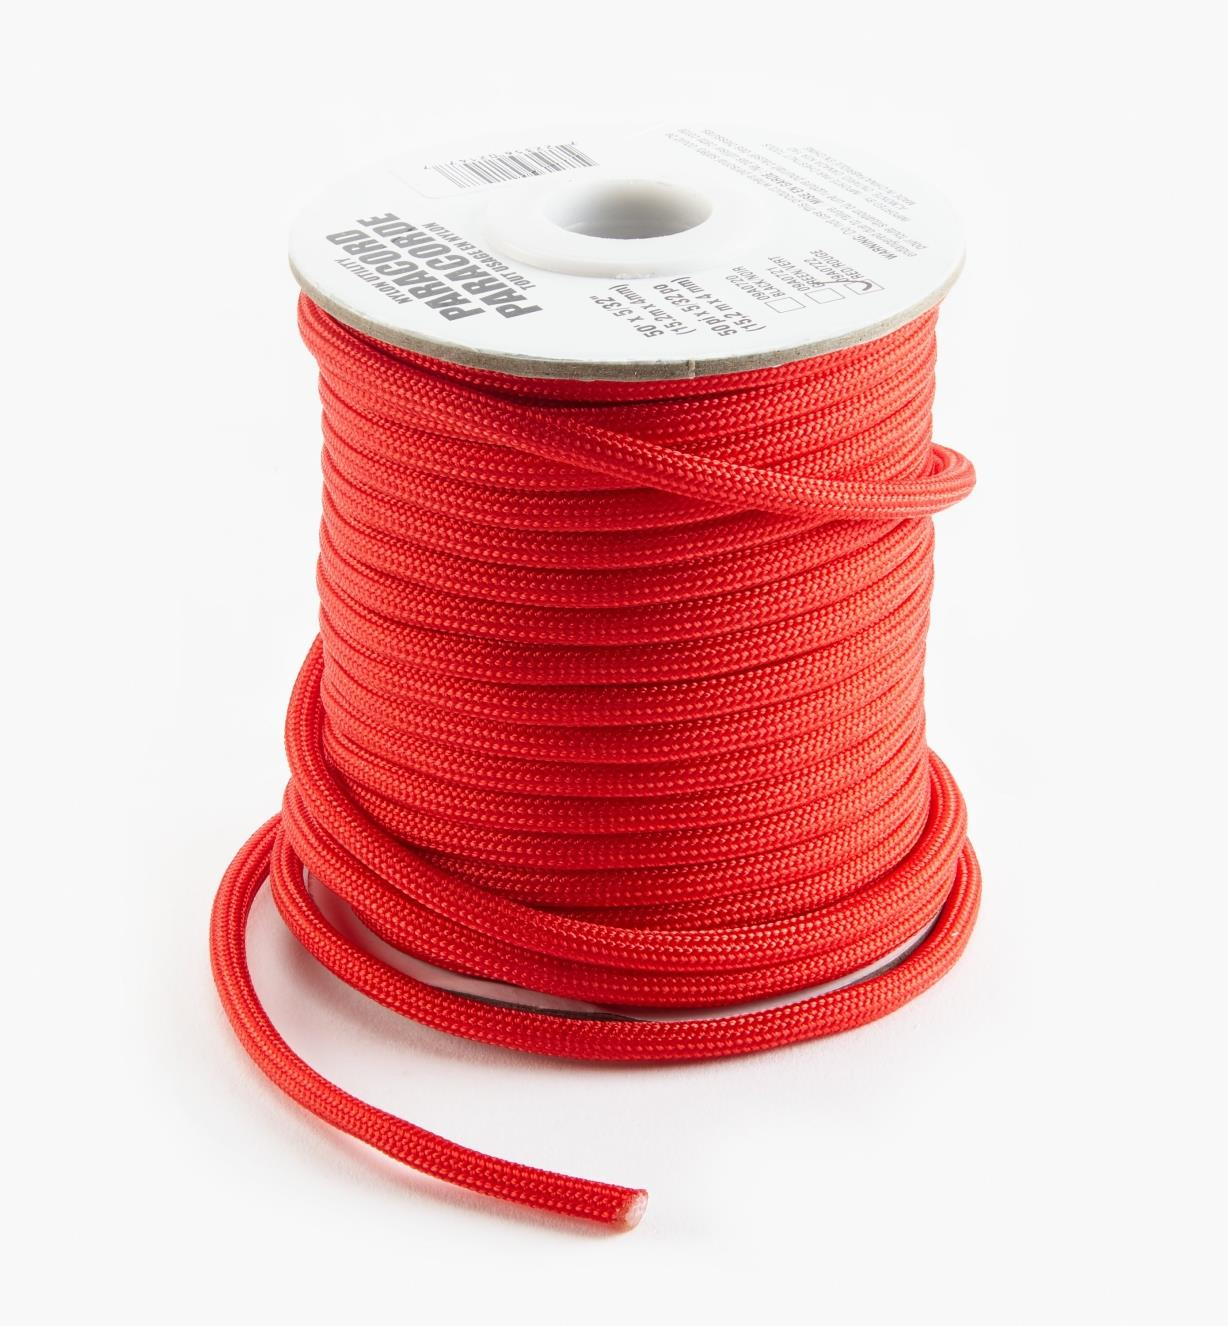 09A0722 - 50' Paracord, Red